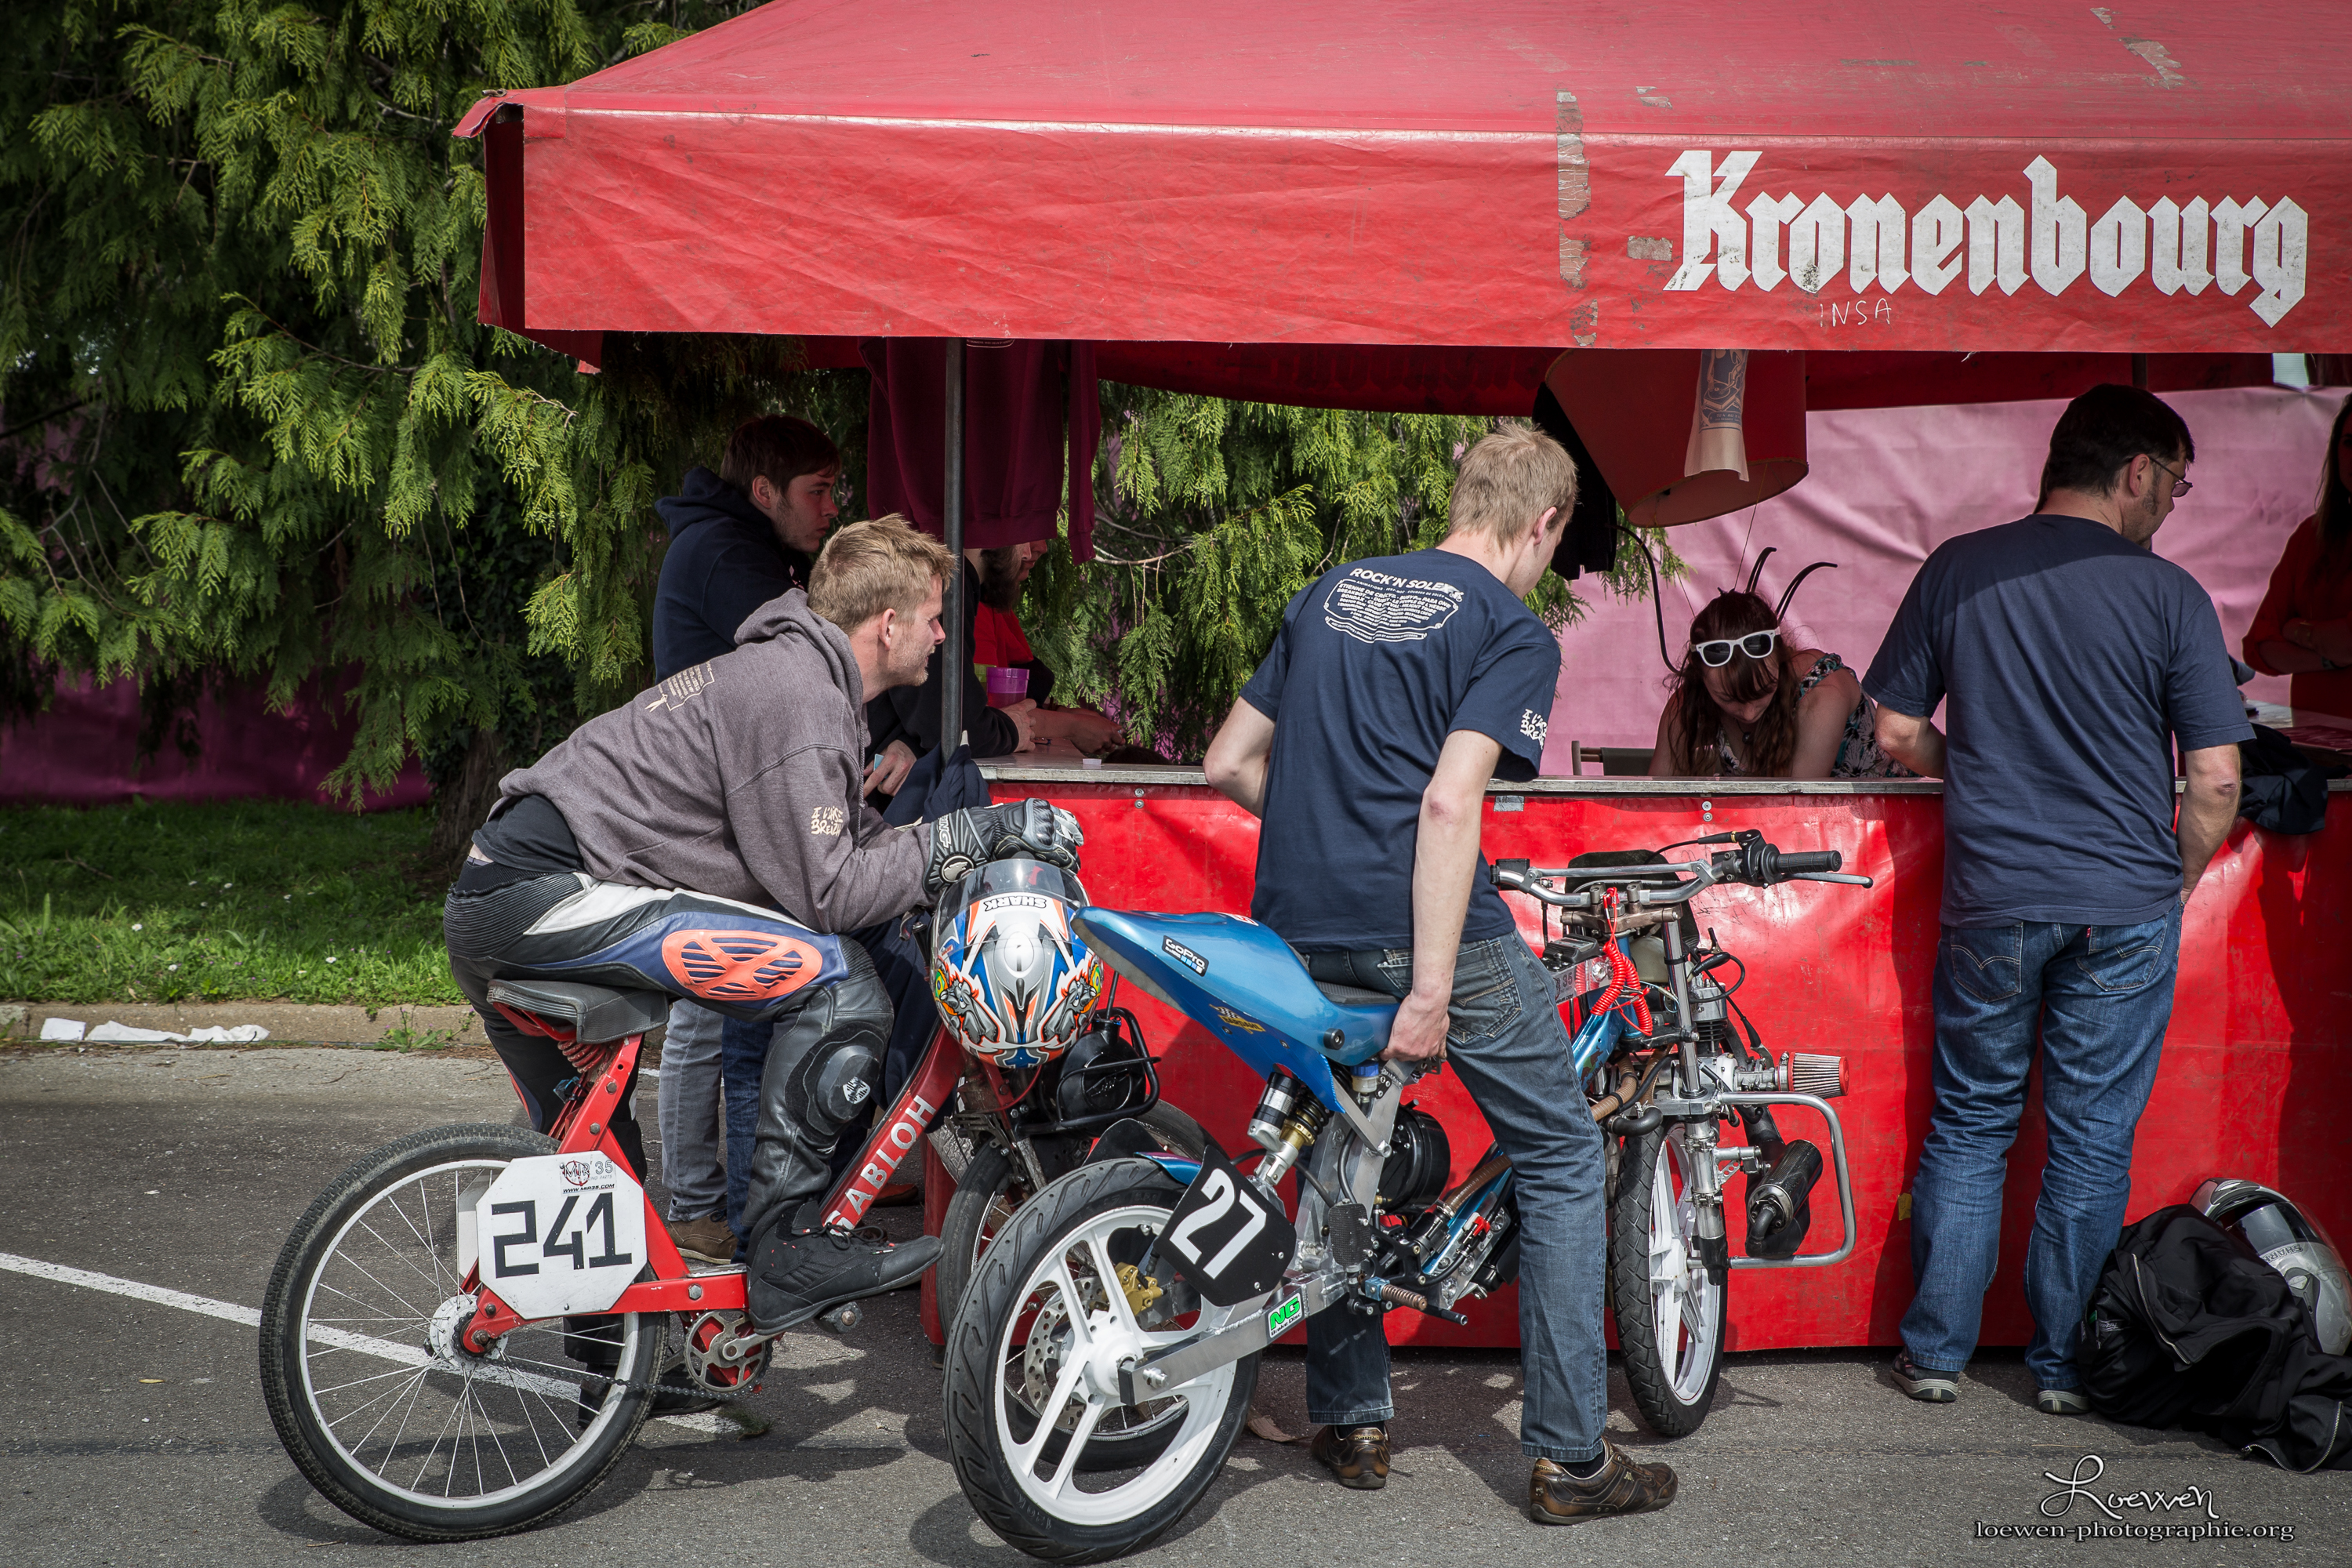 courses-RNS 2016-Loewen photographie (3)